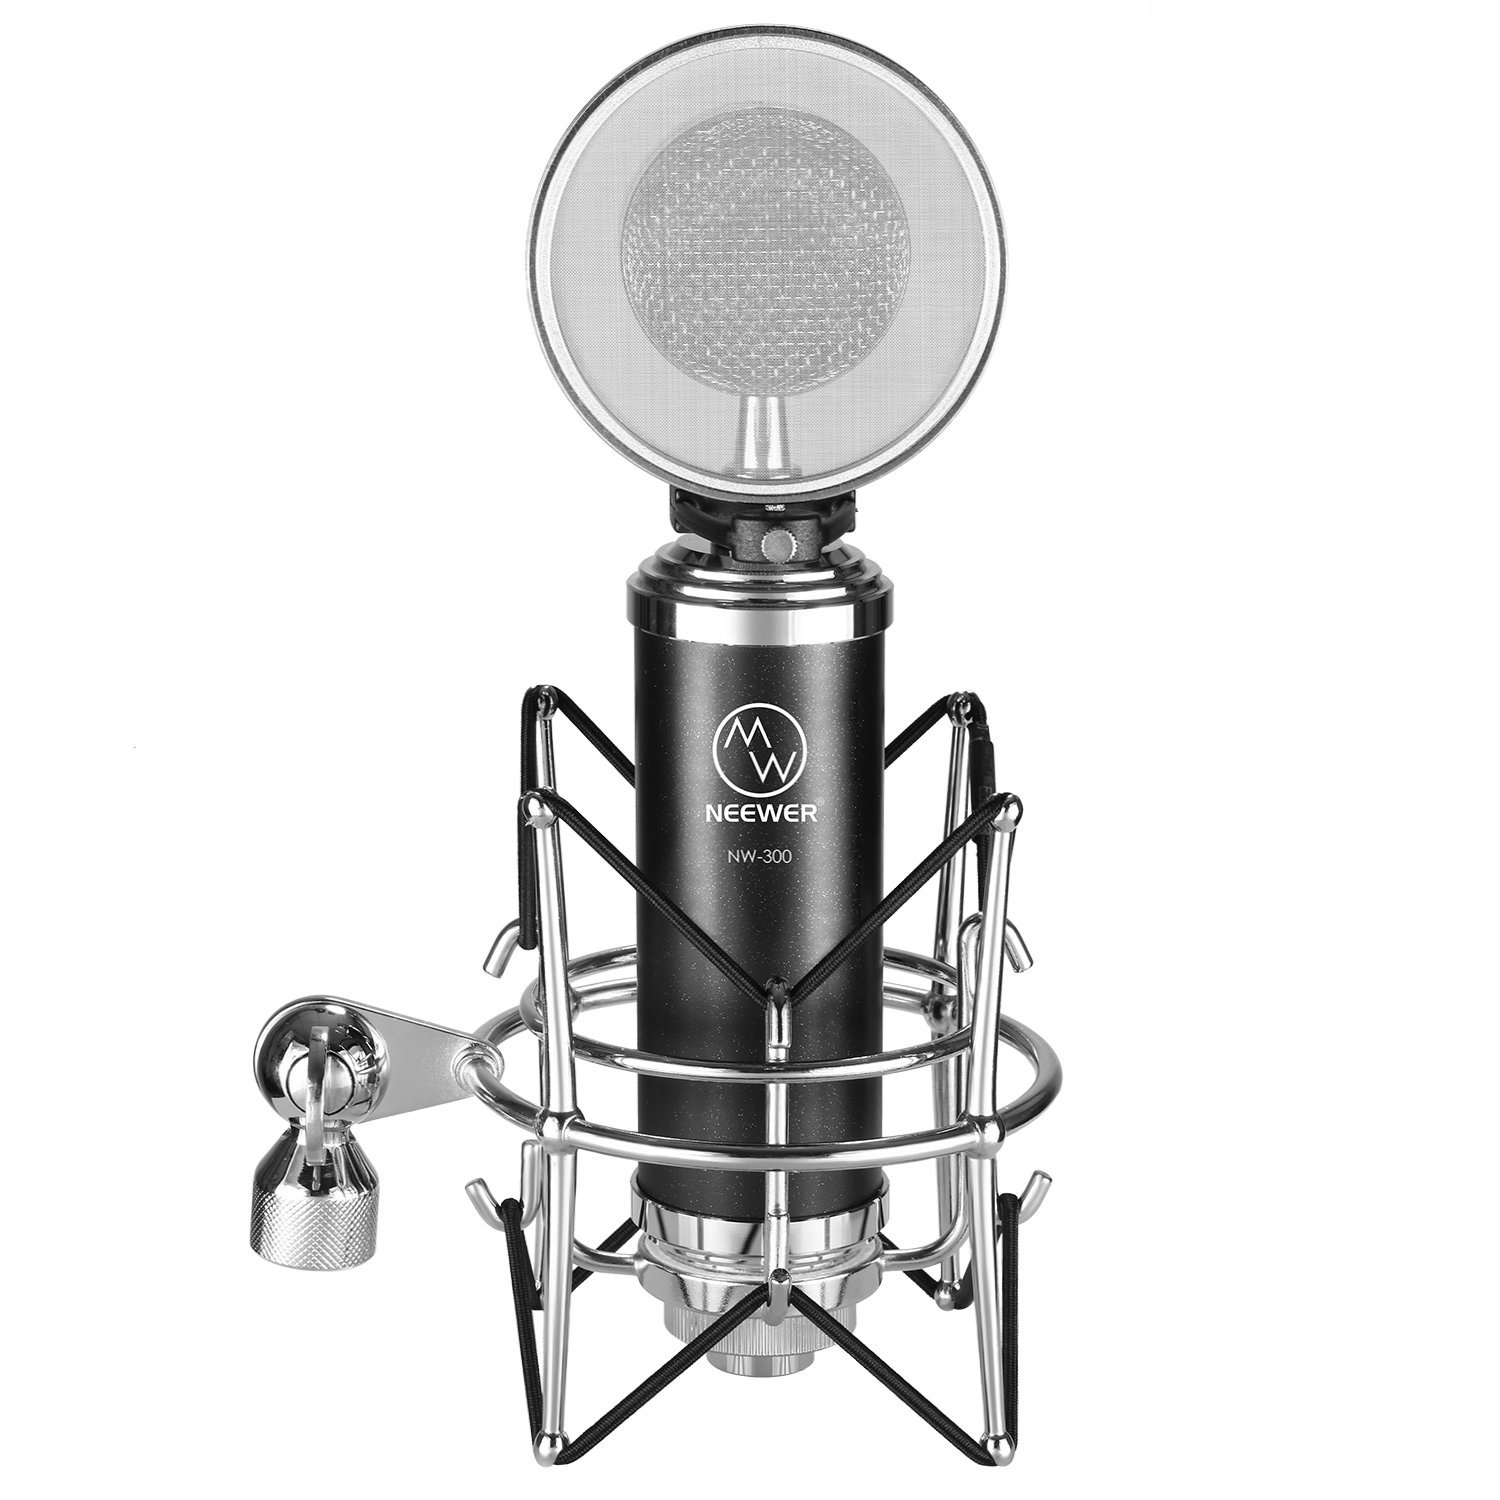 Neewer NW-500 Professional Condenser Microphone Kit: (1) Condenser Microphone + (1) Integrated Metal Pop Filter + (1) Shock Mount + (1) 3.5MM to XLR Microphone Cable